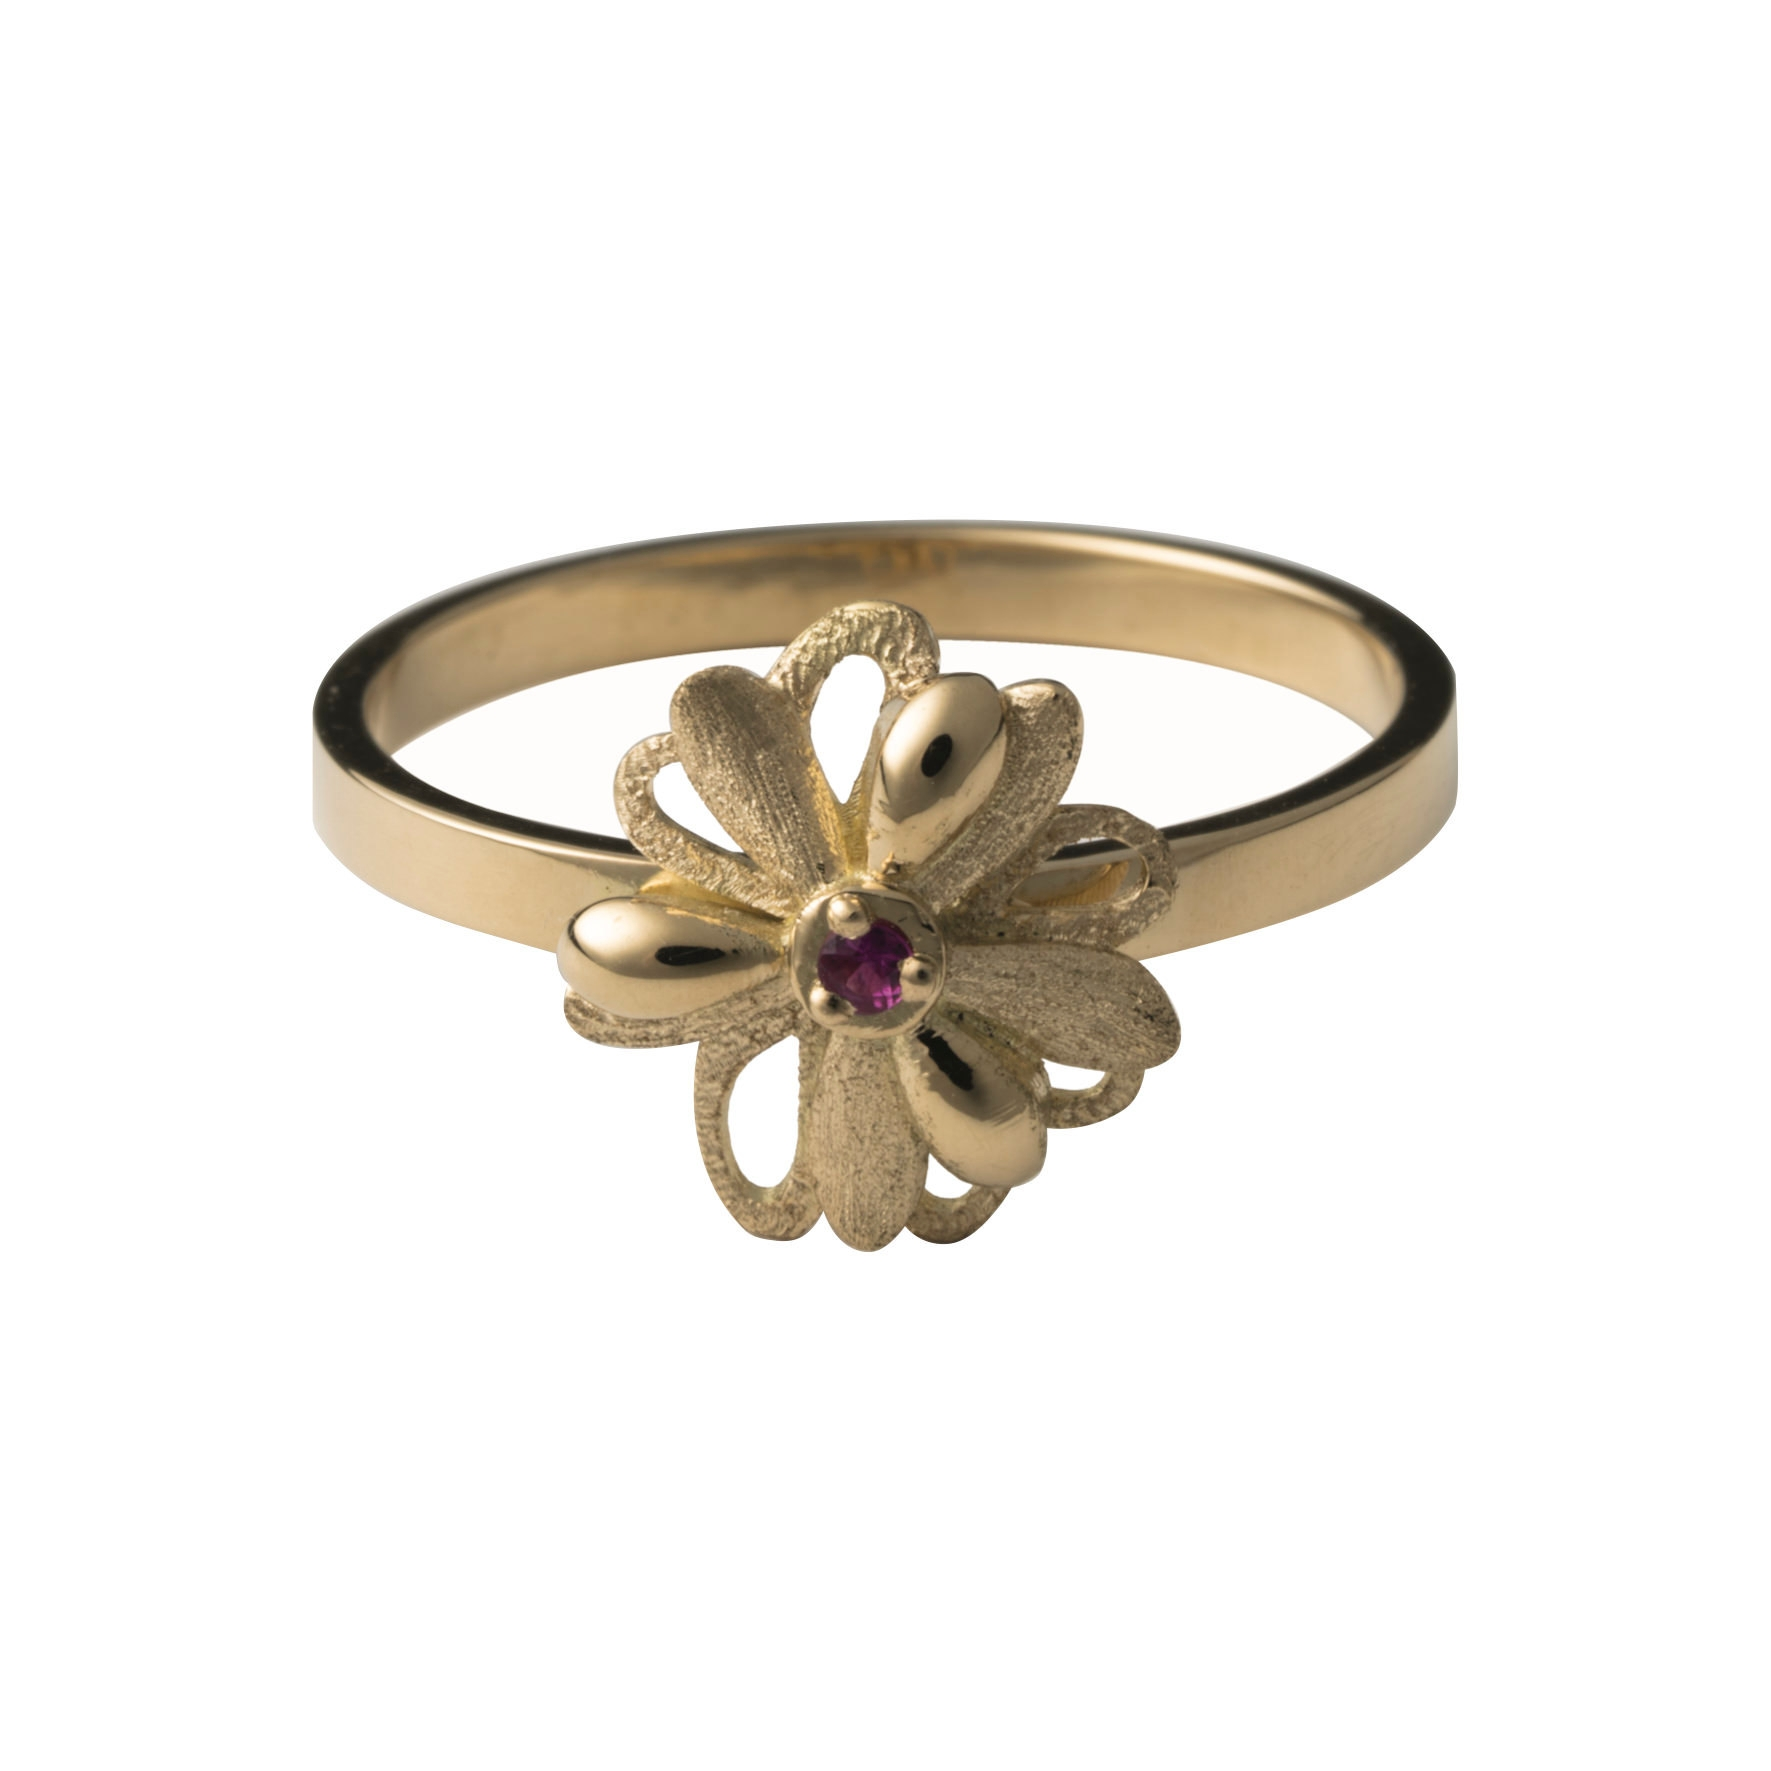 MOZAFARIAN GOLD AND RUBY RING